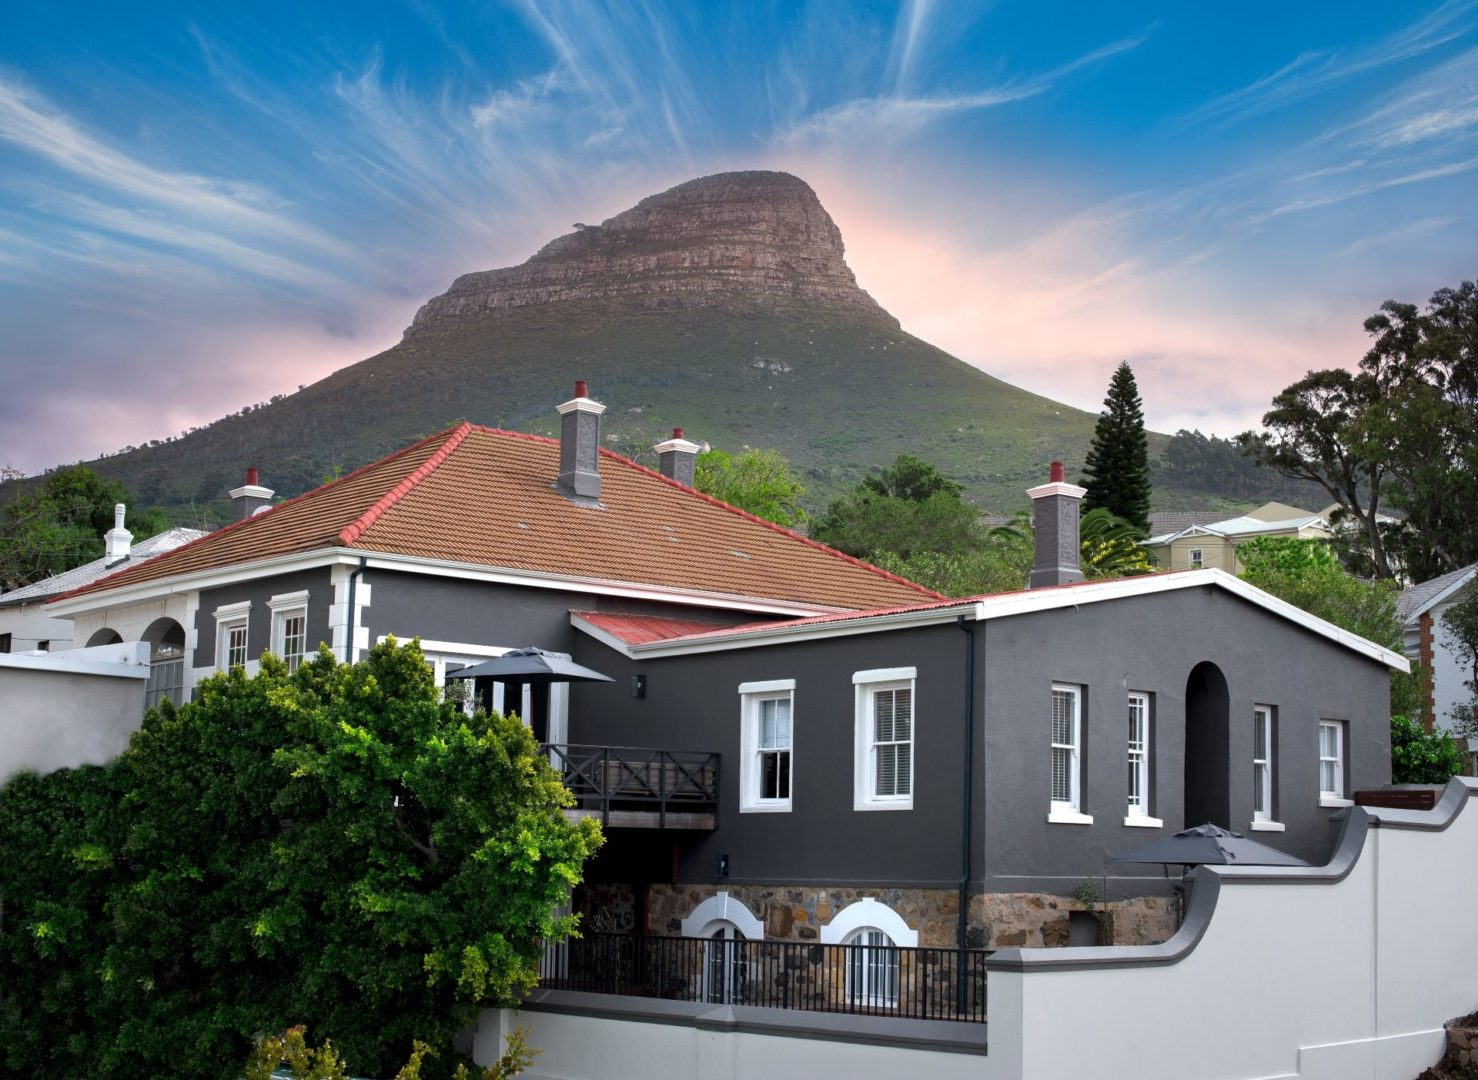 Lions Head looms over the hotel